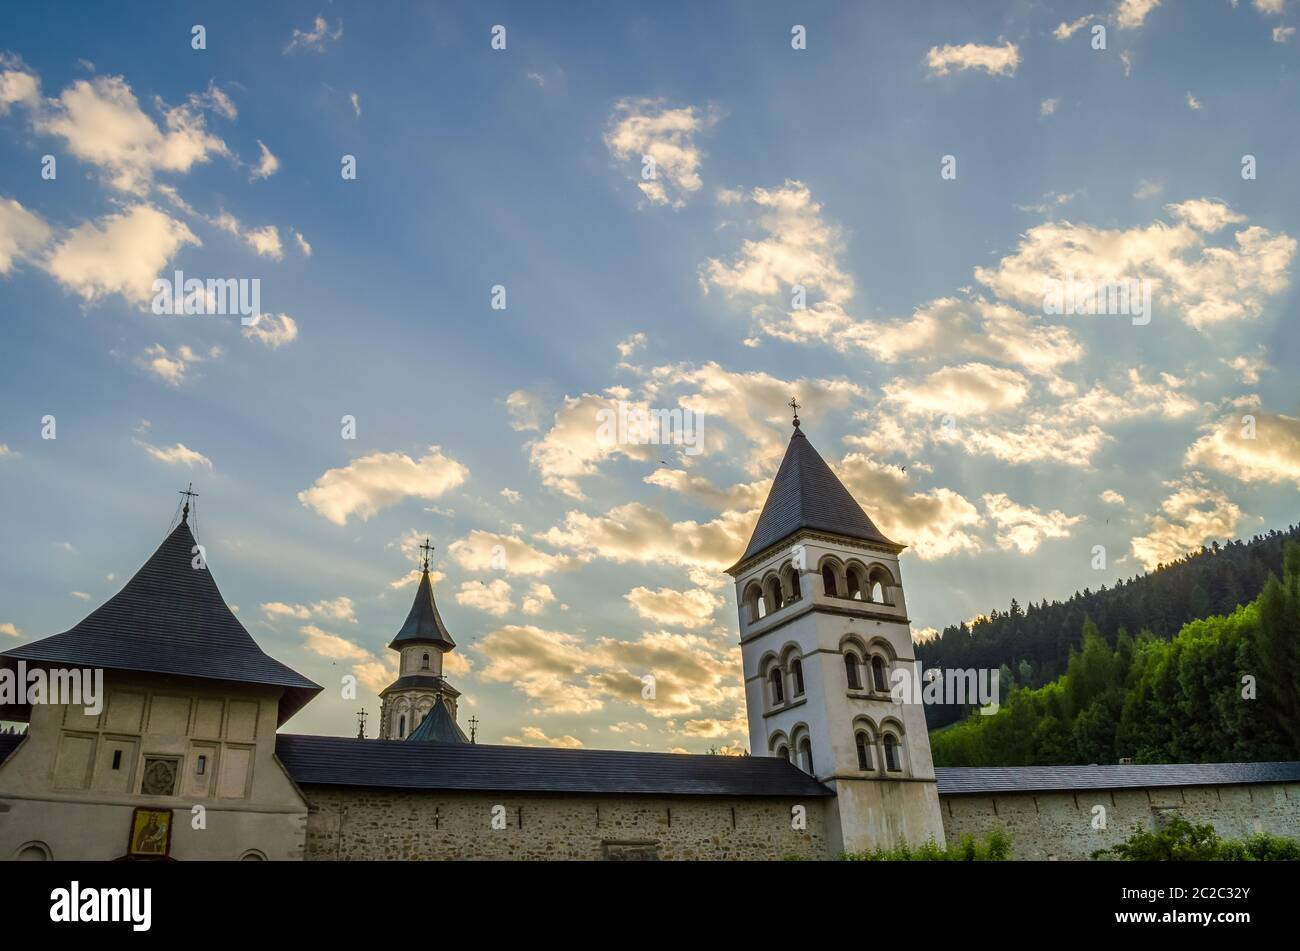 From below aged towers of Putna Orthodox Monastery located against cloudy morning sky in Romania Stock Photo